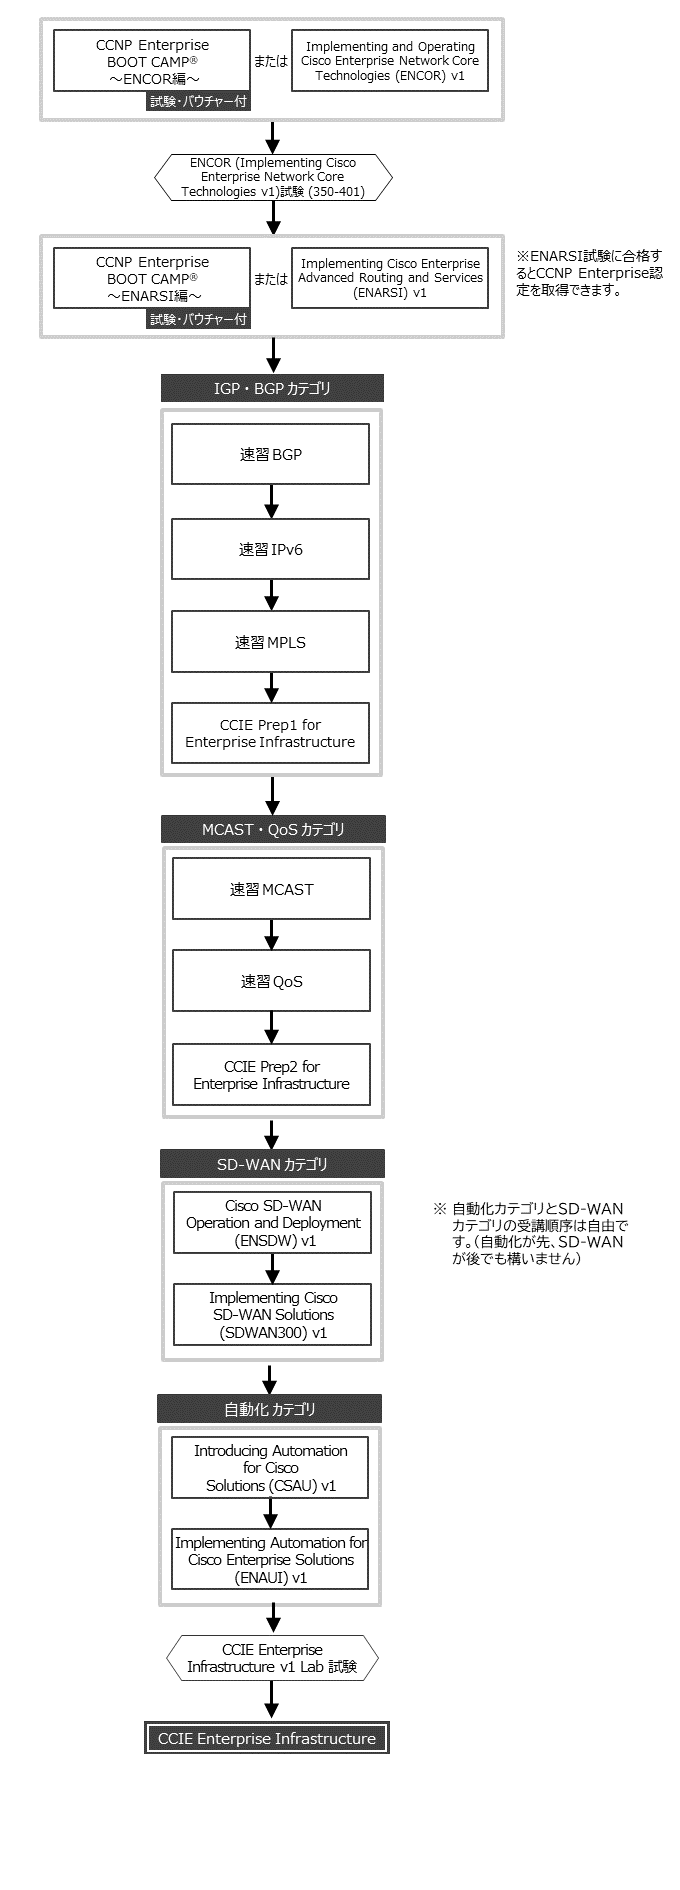 CCIE Routing and Switching資格取得 コースフロー